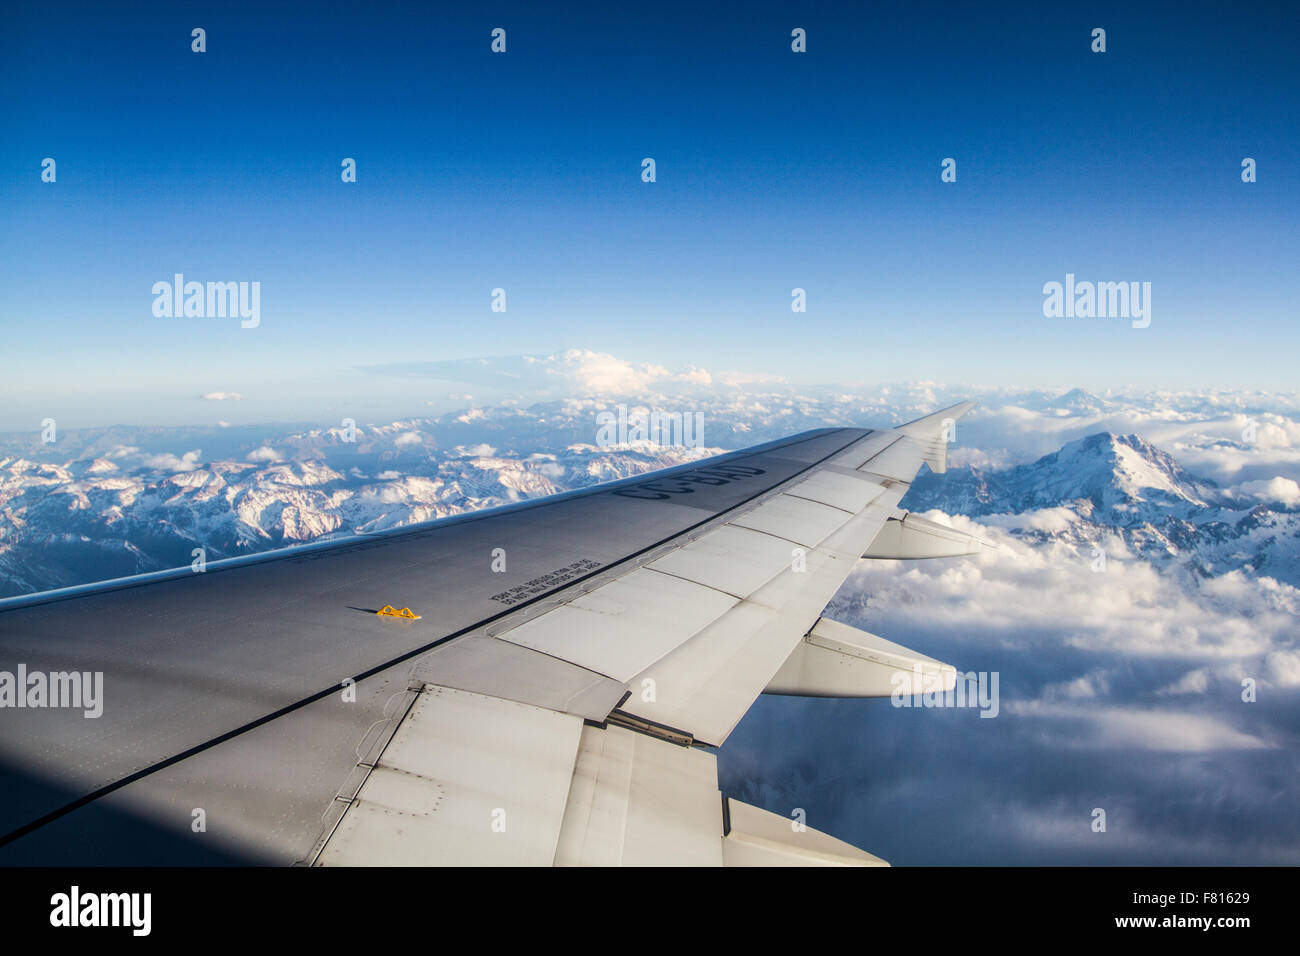 Andes Mountains (Cordillera de los Andes) viewed from an airplane window, near Santiago, Chile. - Stock Image